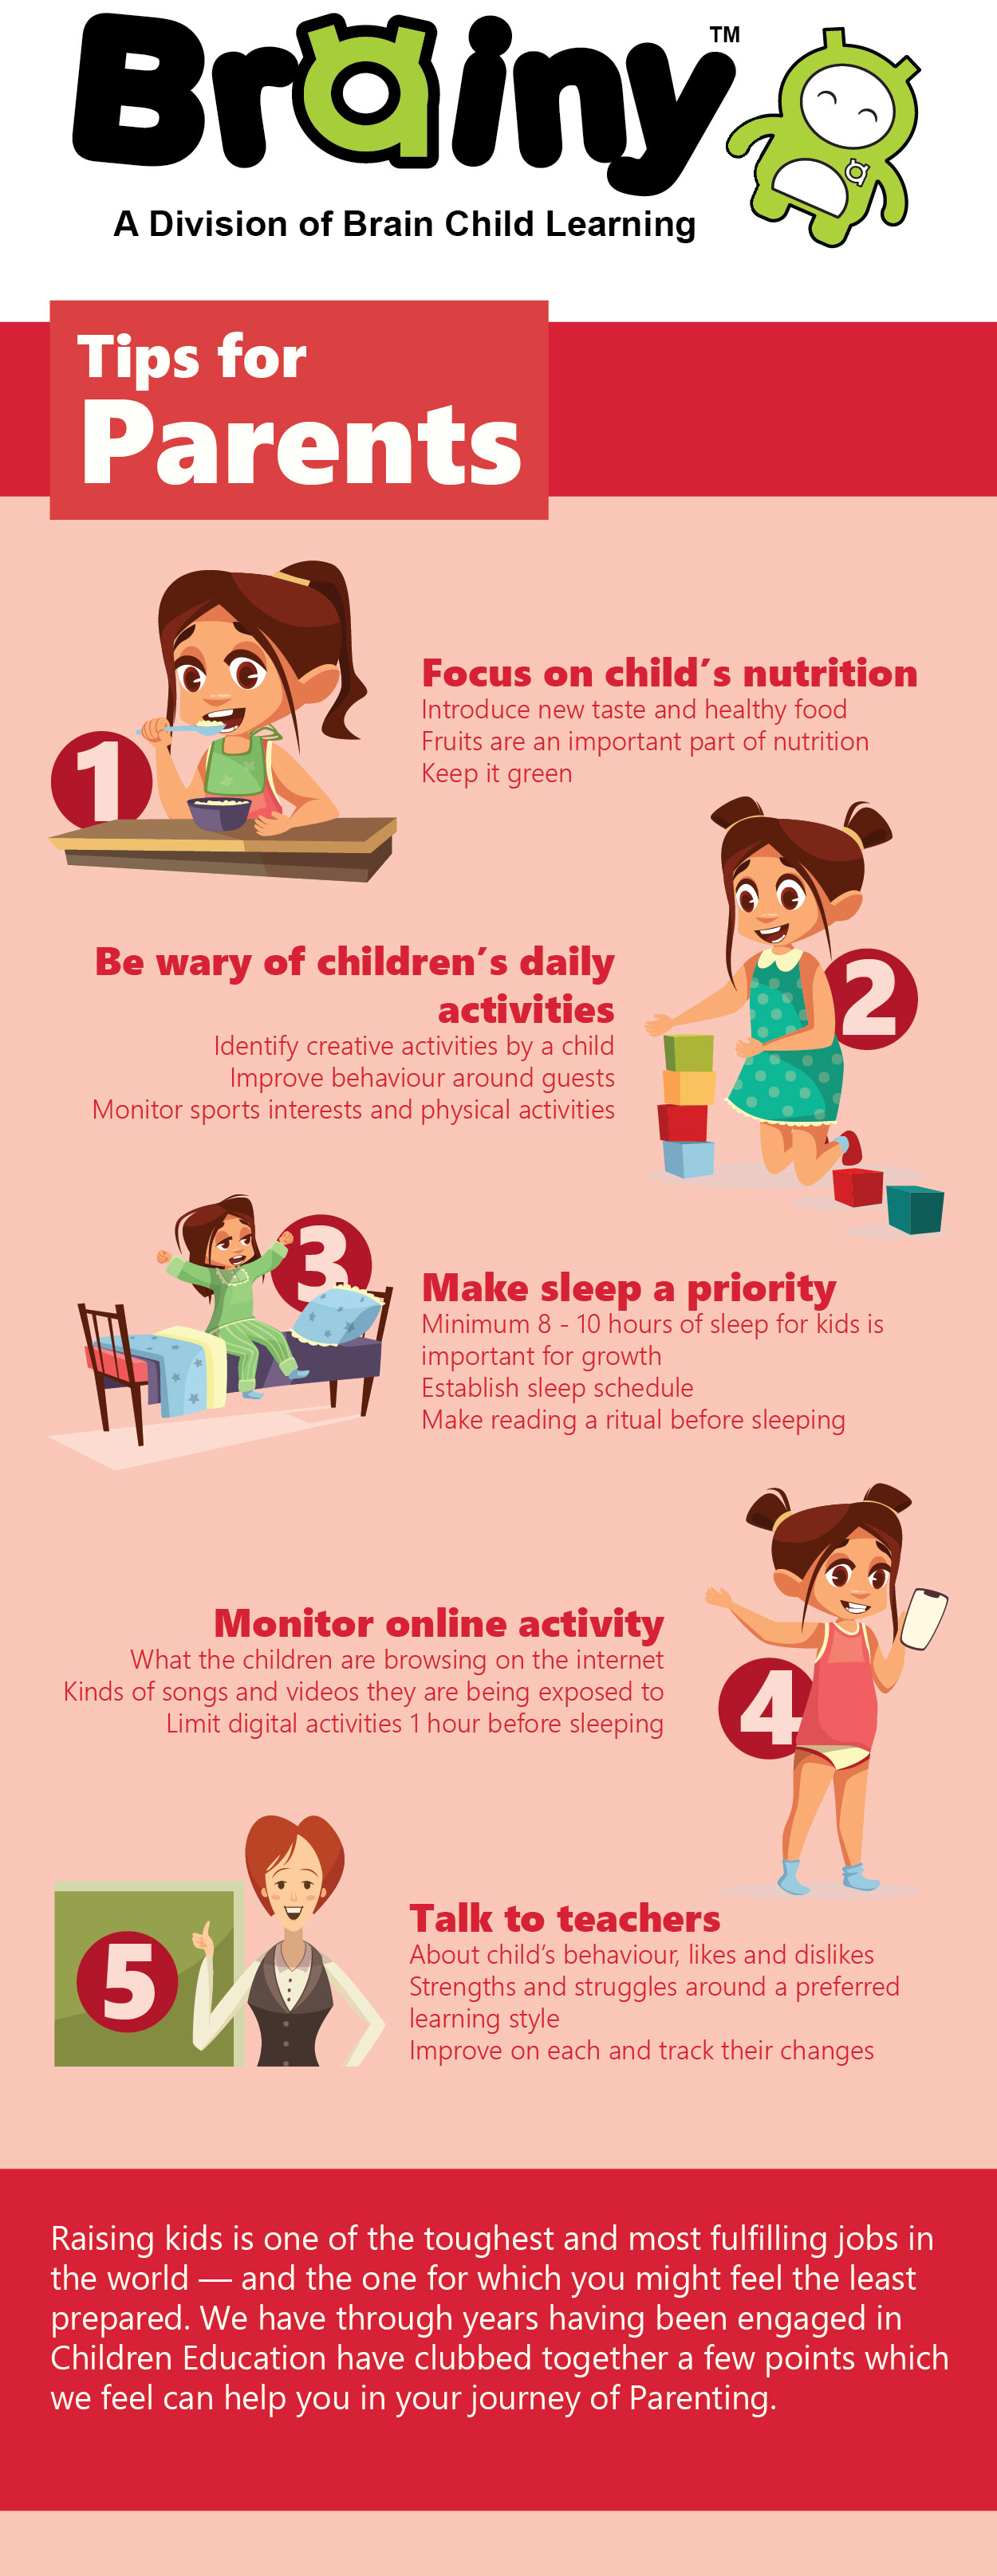 Tips For Parents For Better Parenting Infographic